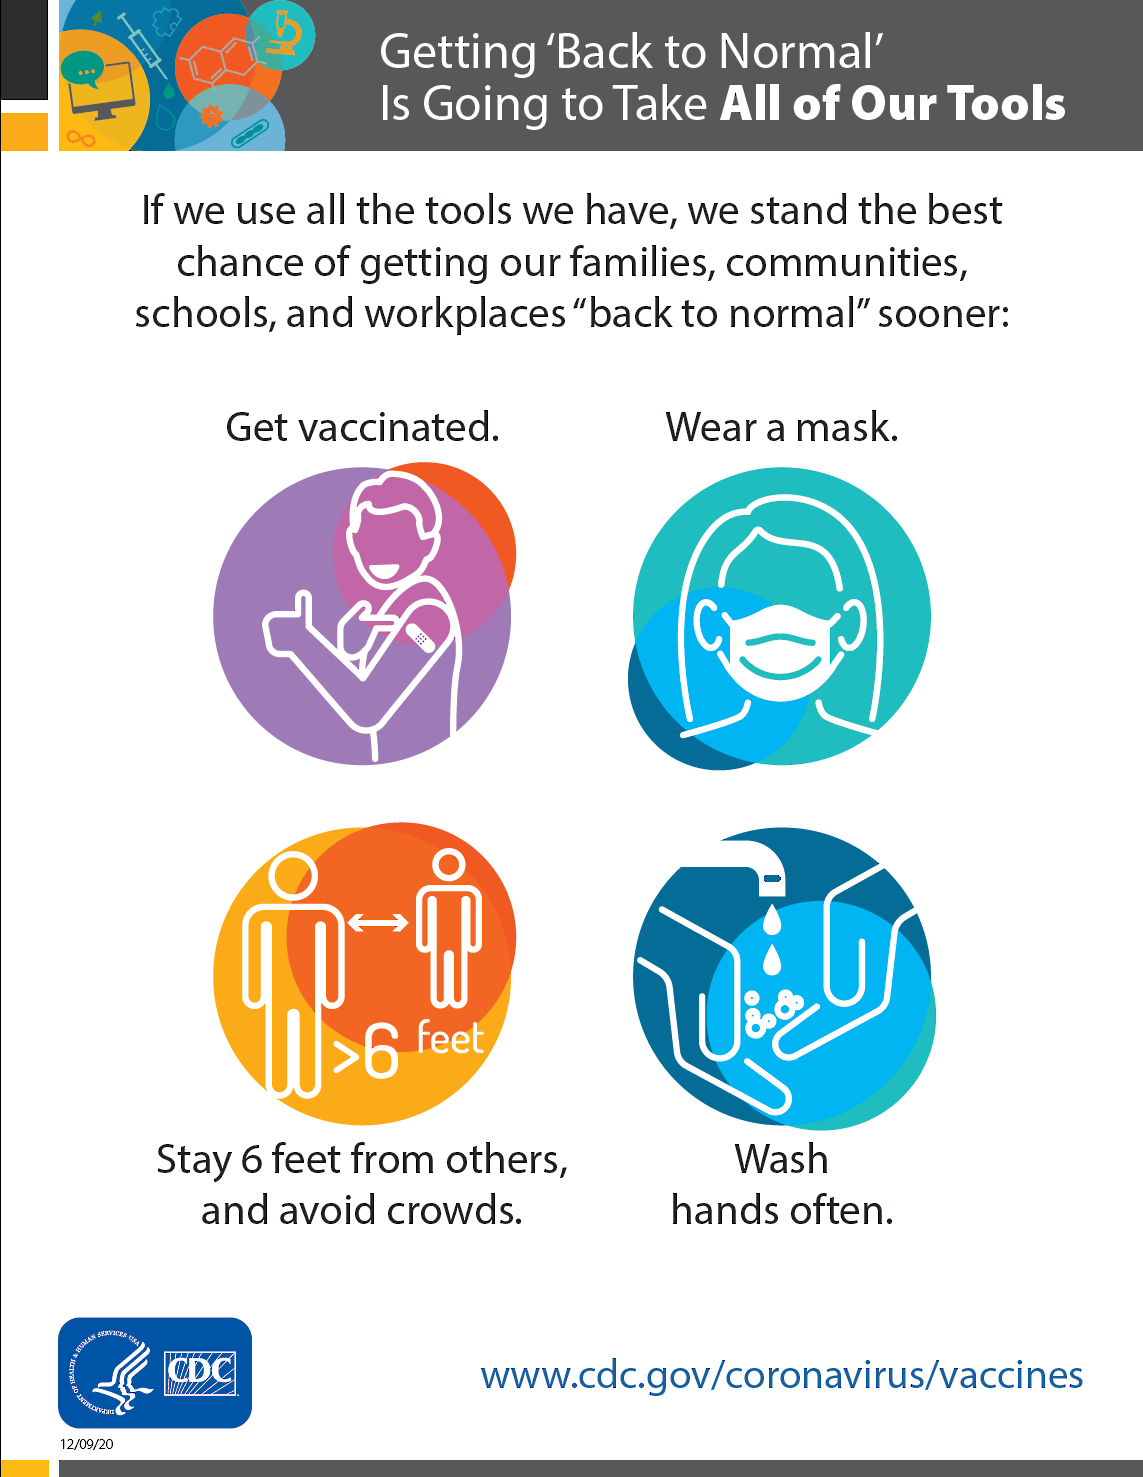 stopping COVID-19 pandemic is going to take all of our tools wear a mask, wash hands, stay 6 feet from others, get vaccinated